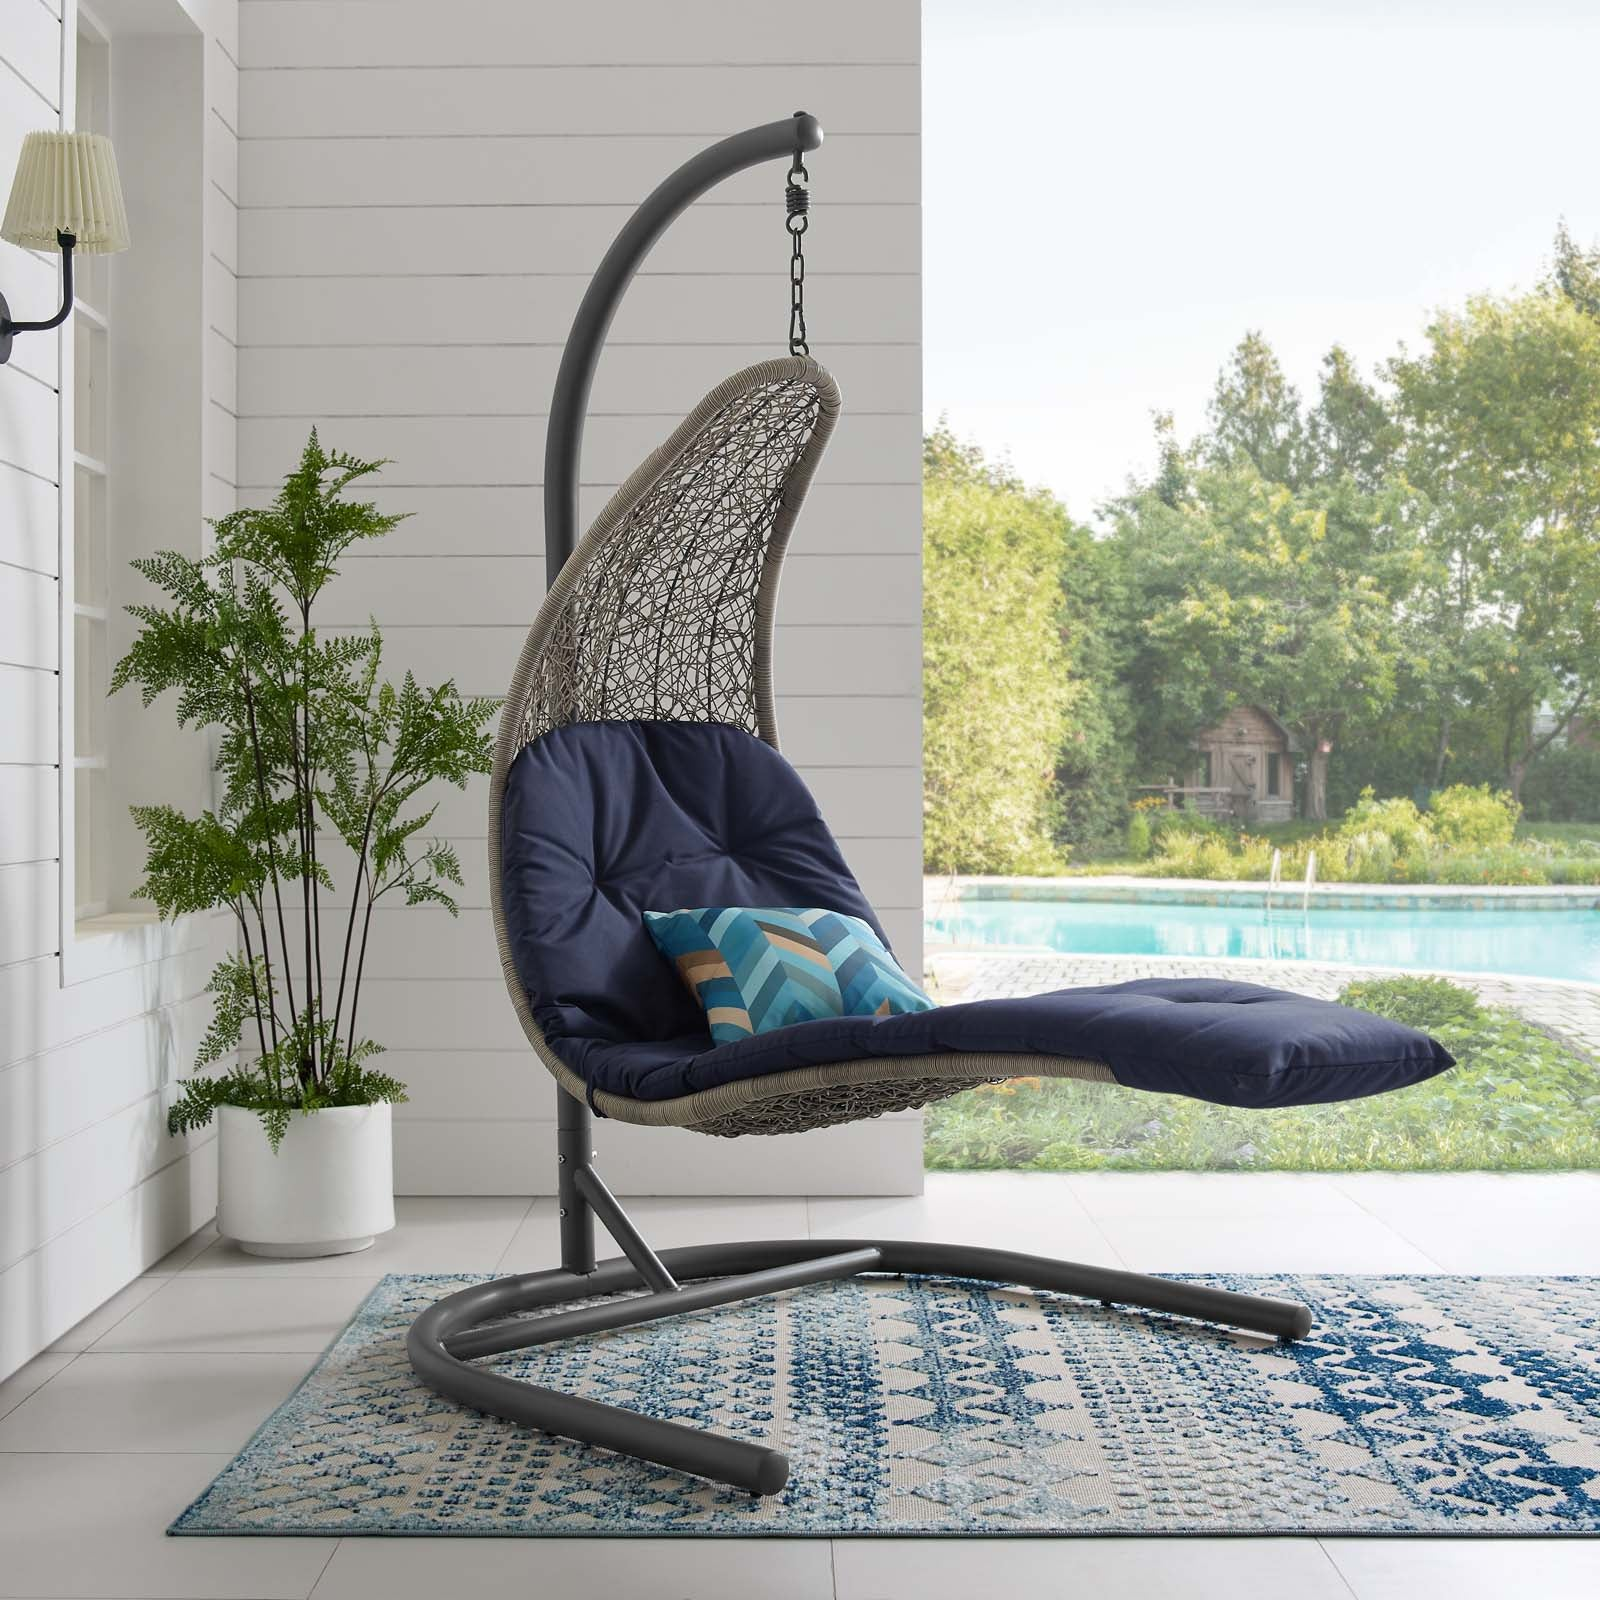 Chaise Lounge Outdoor Patio Swing Chair